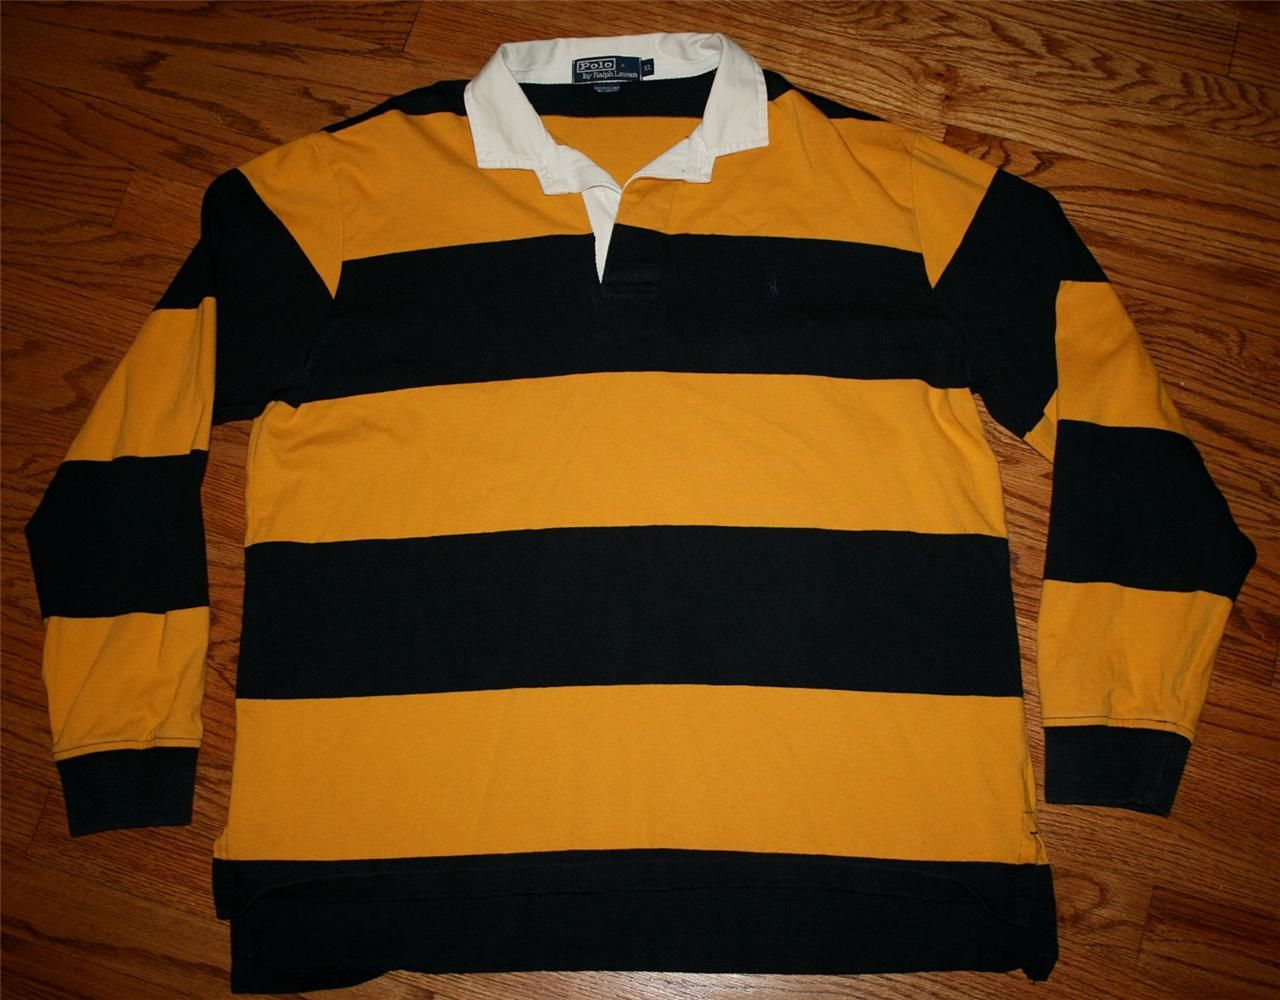 Daily Limit Exceeded Long Sleeve Rugby Shirts Polo Ralph Lauren Rugby Shirt